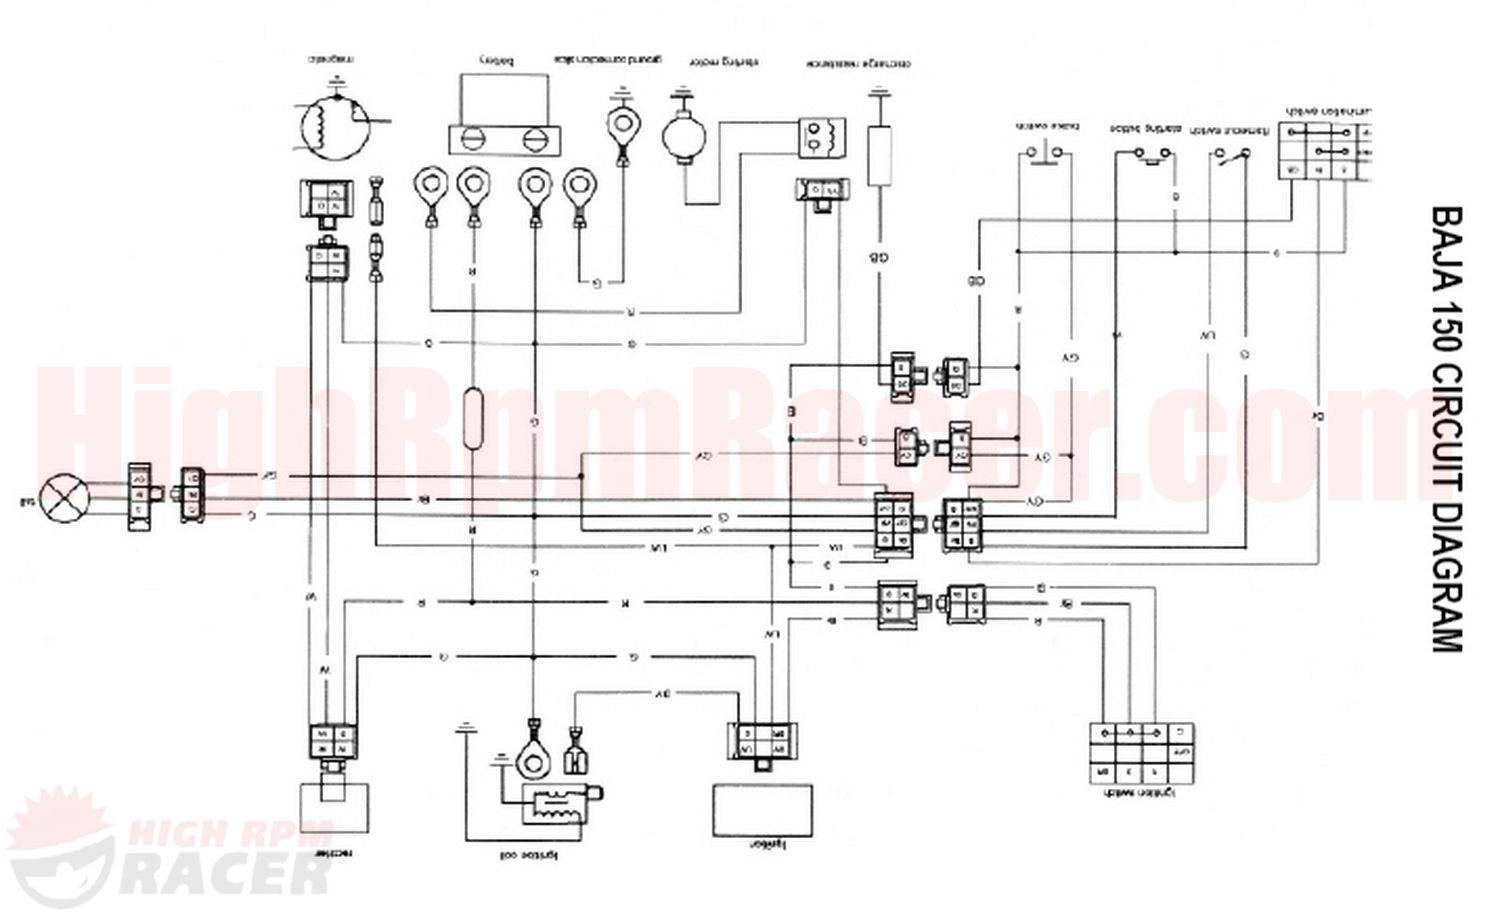 Chinese Dirt Bike Wiring Diagram